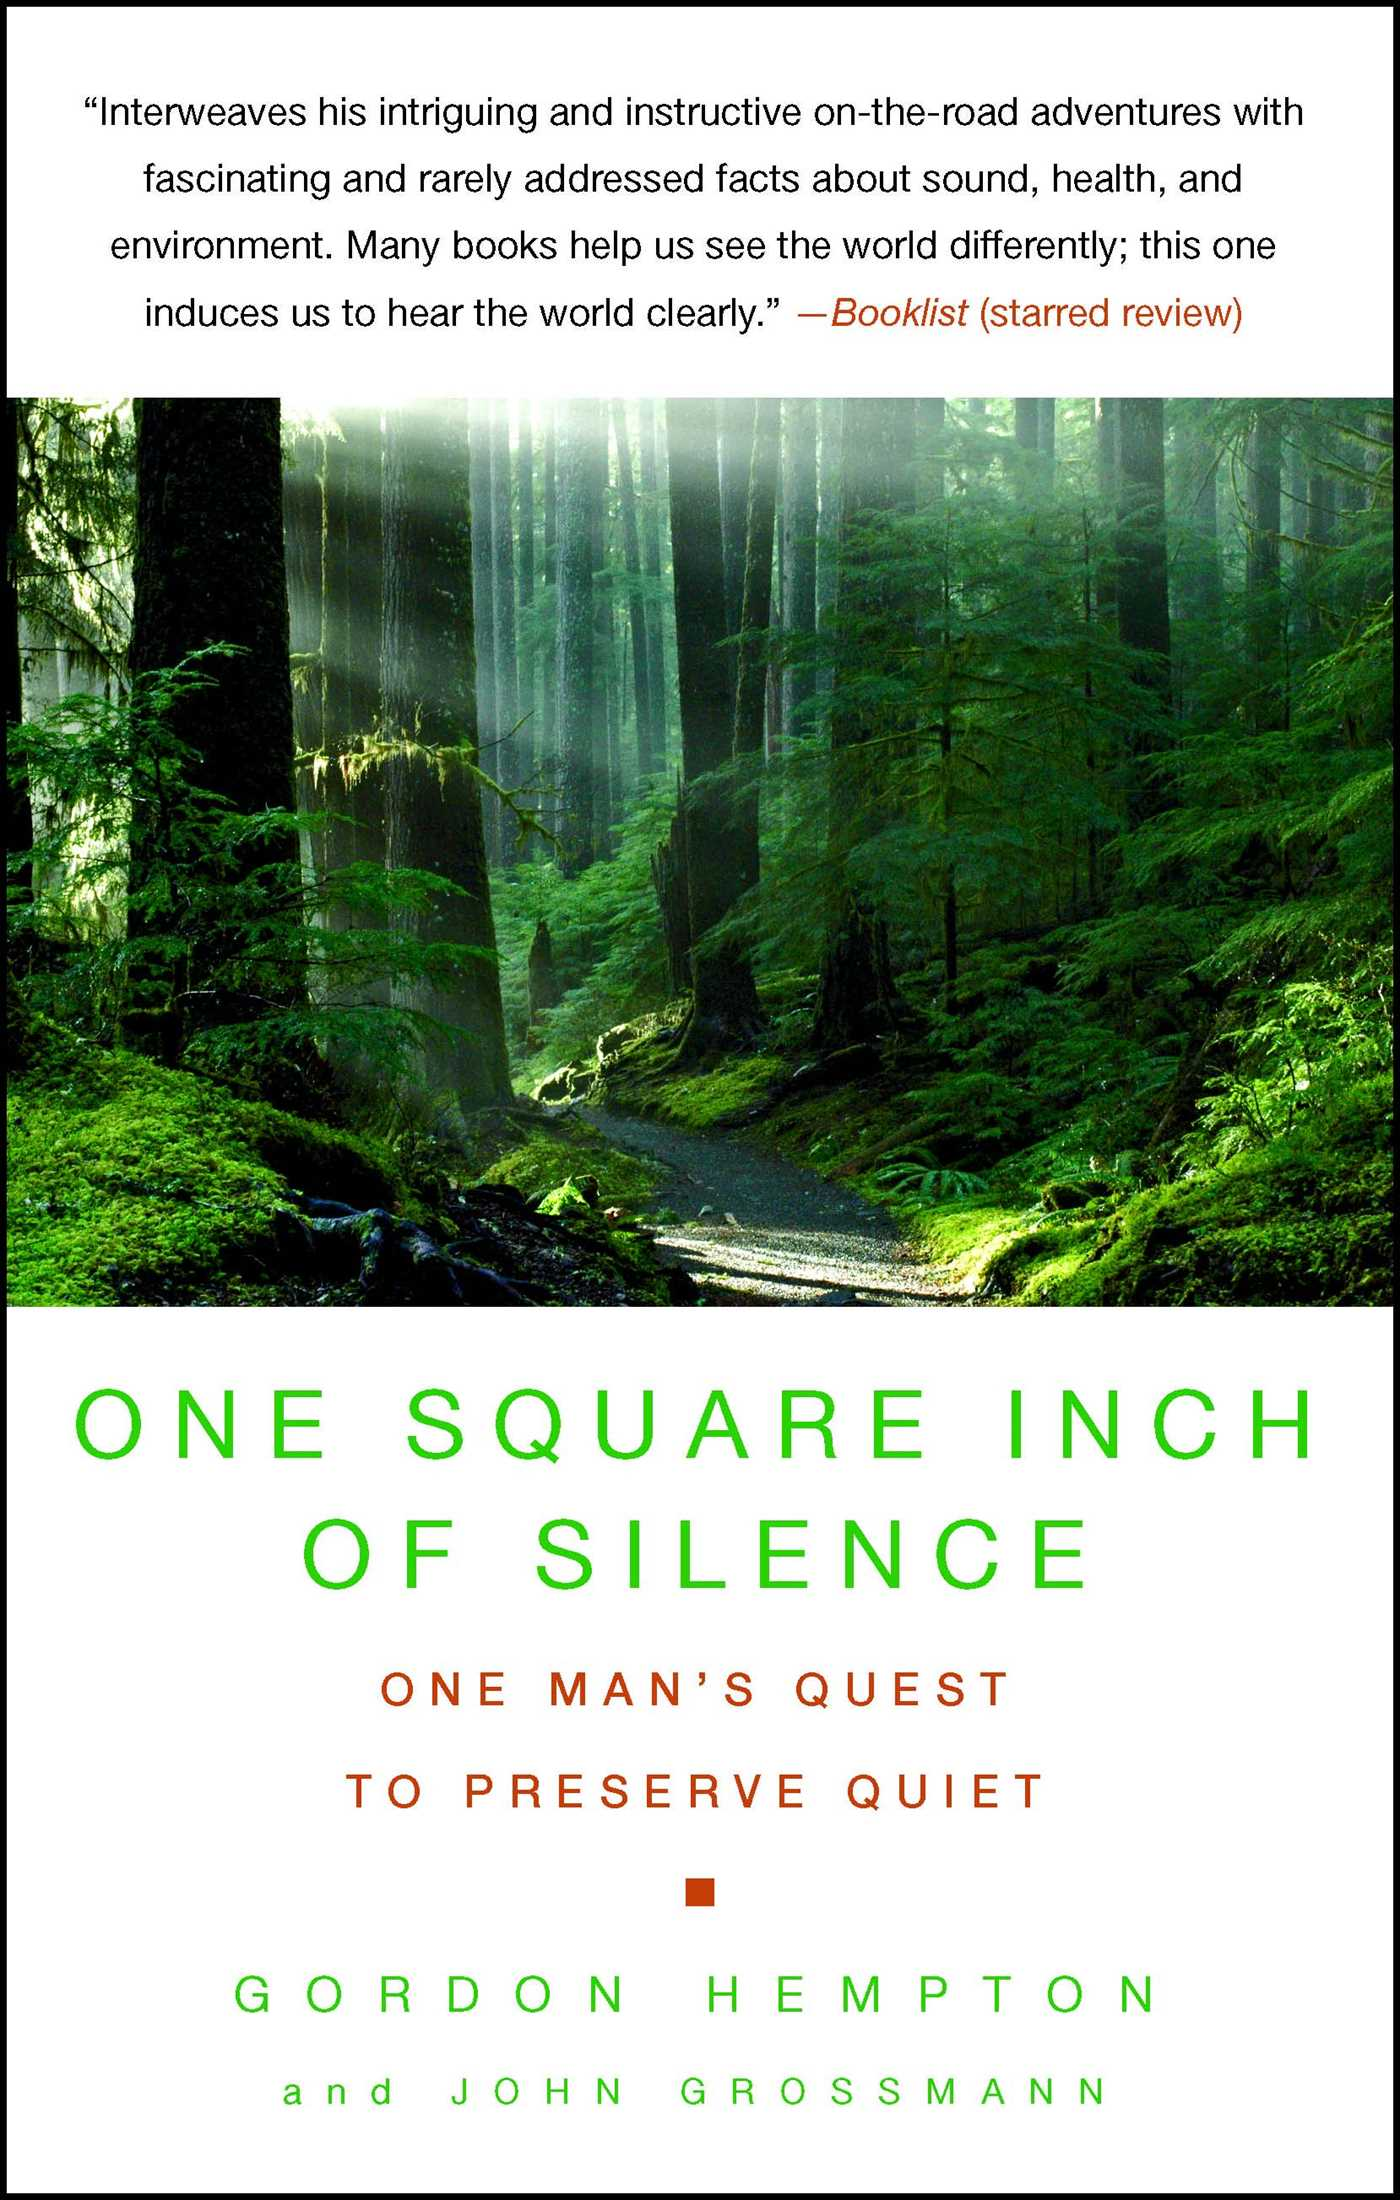 One square inch of silence 9781416559825 hr